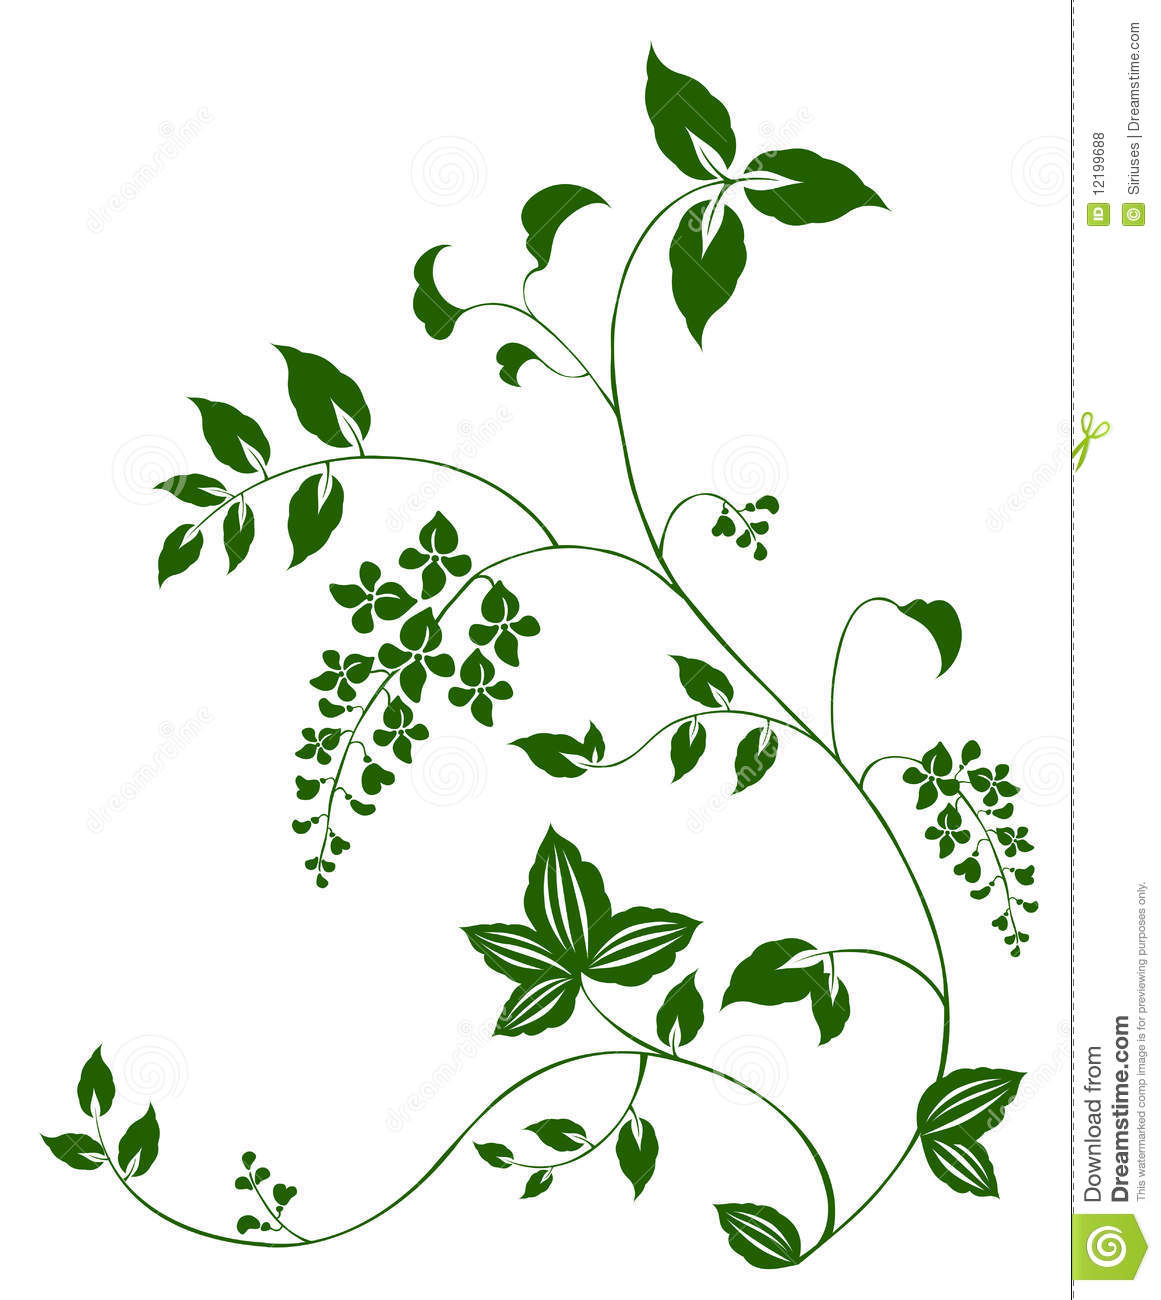 Flower And Vine Pattern Royalty Free Stock Photos - Image: 12199688